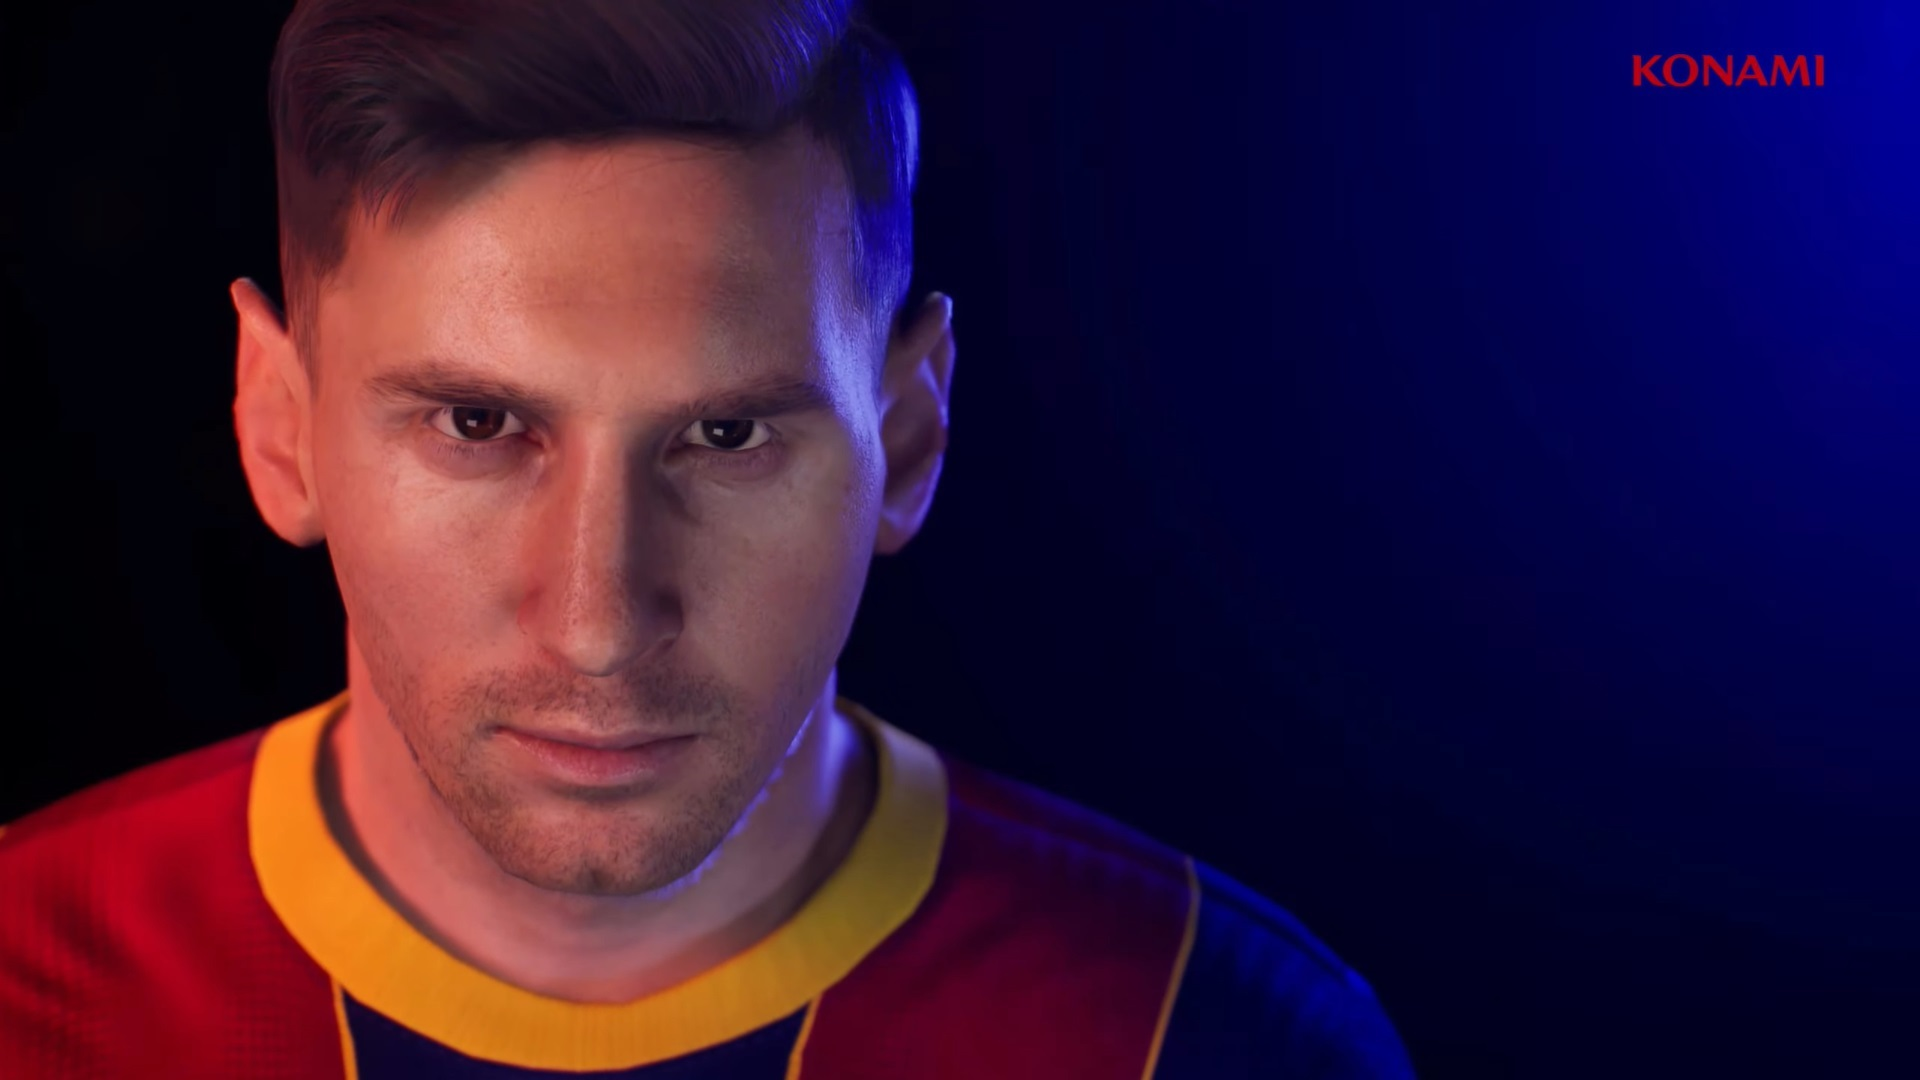 pictures of konami won t talk about messi leaving fc barcelona 1 1 gamereactor